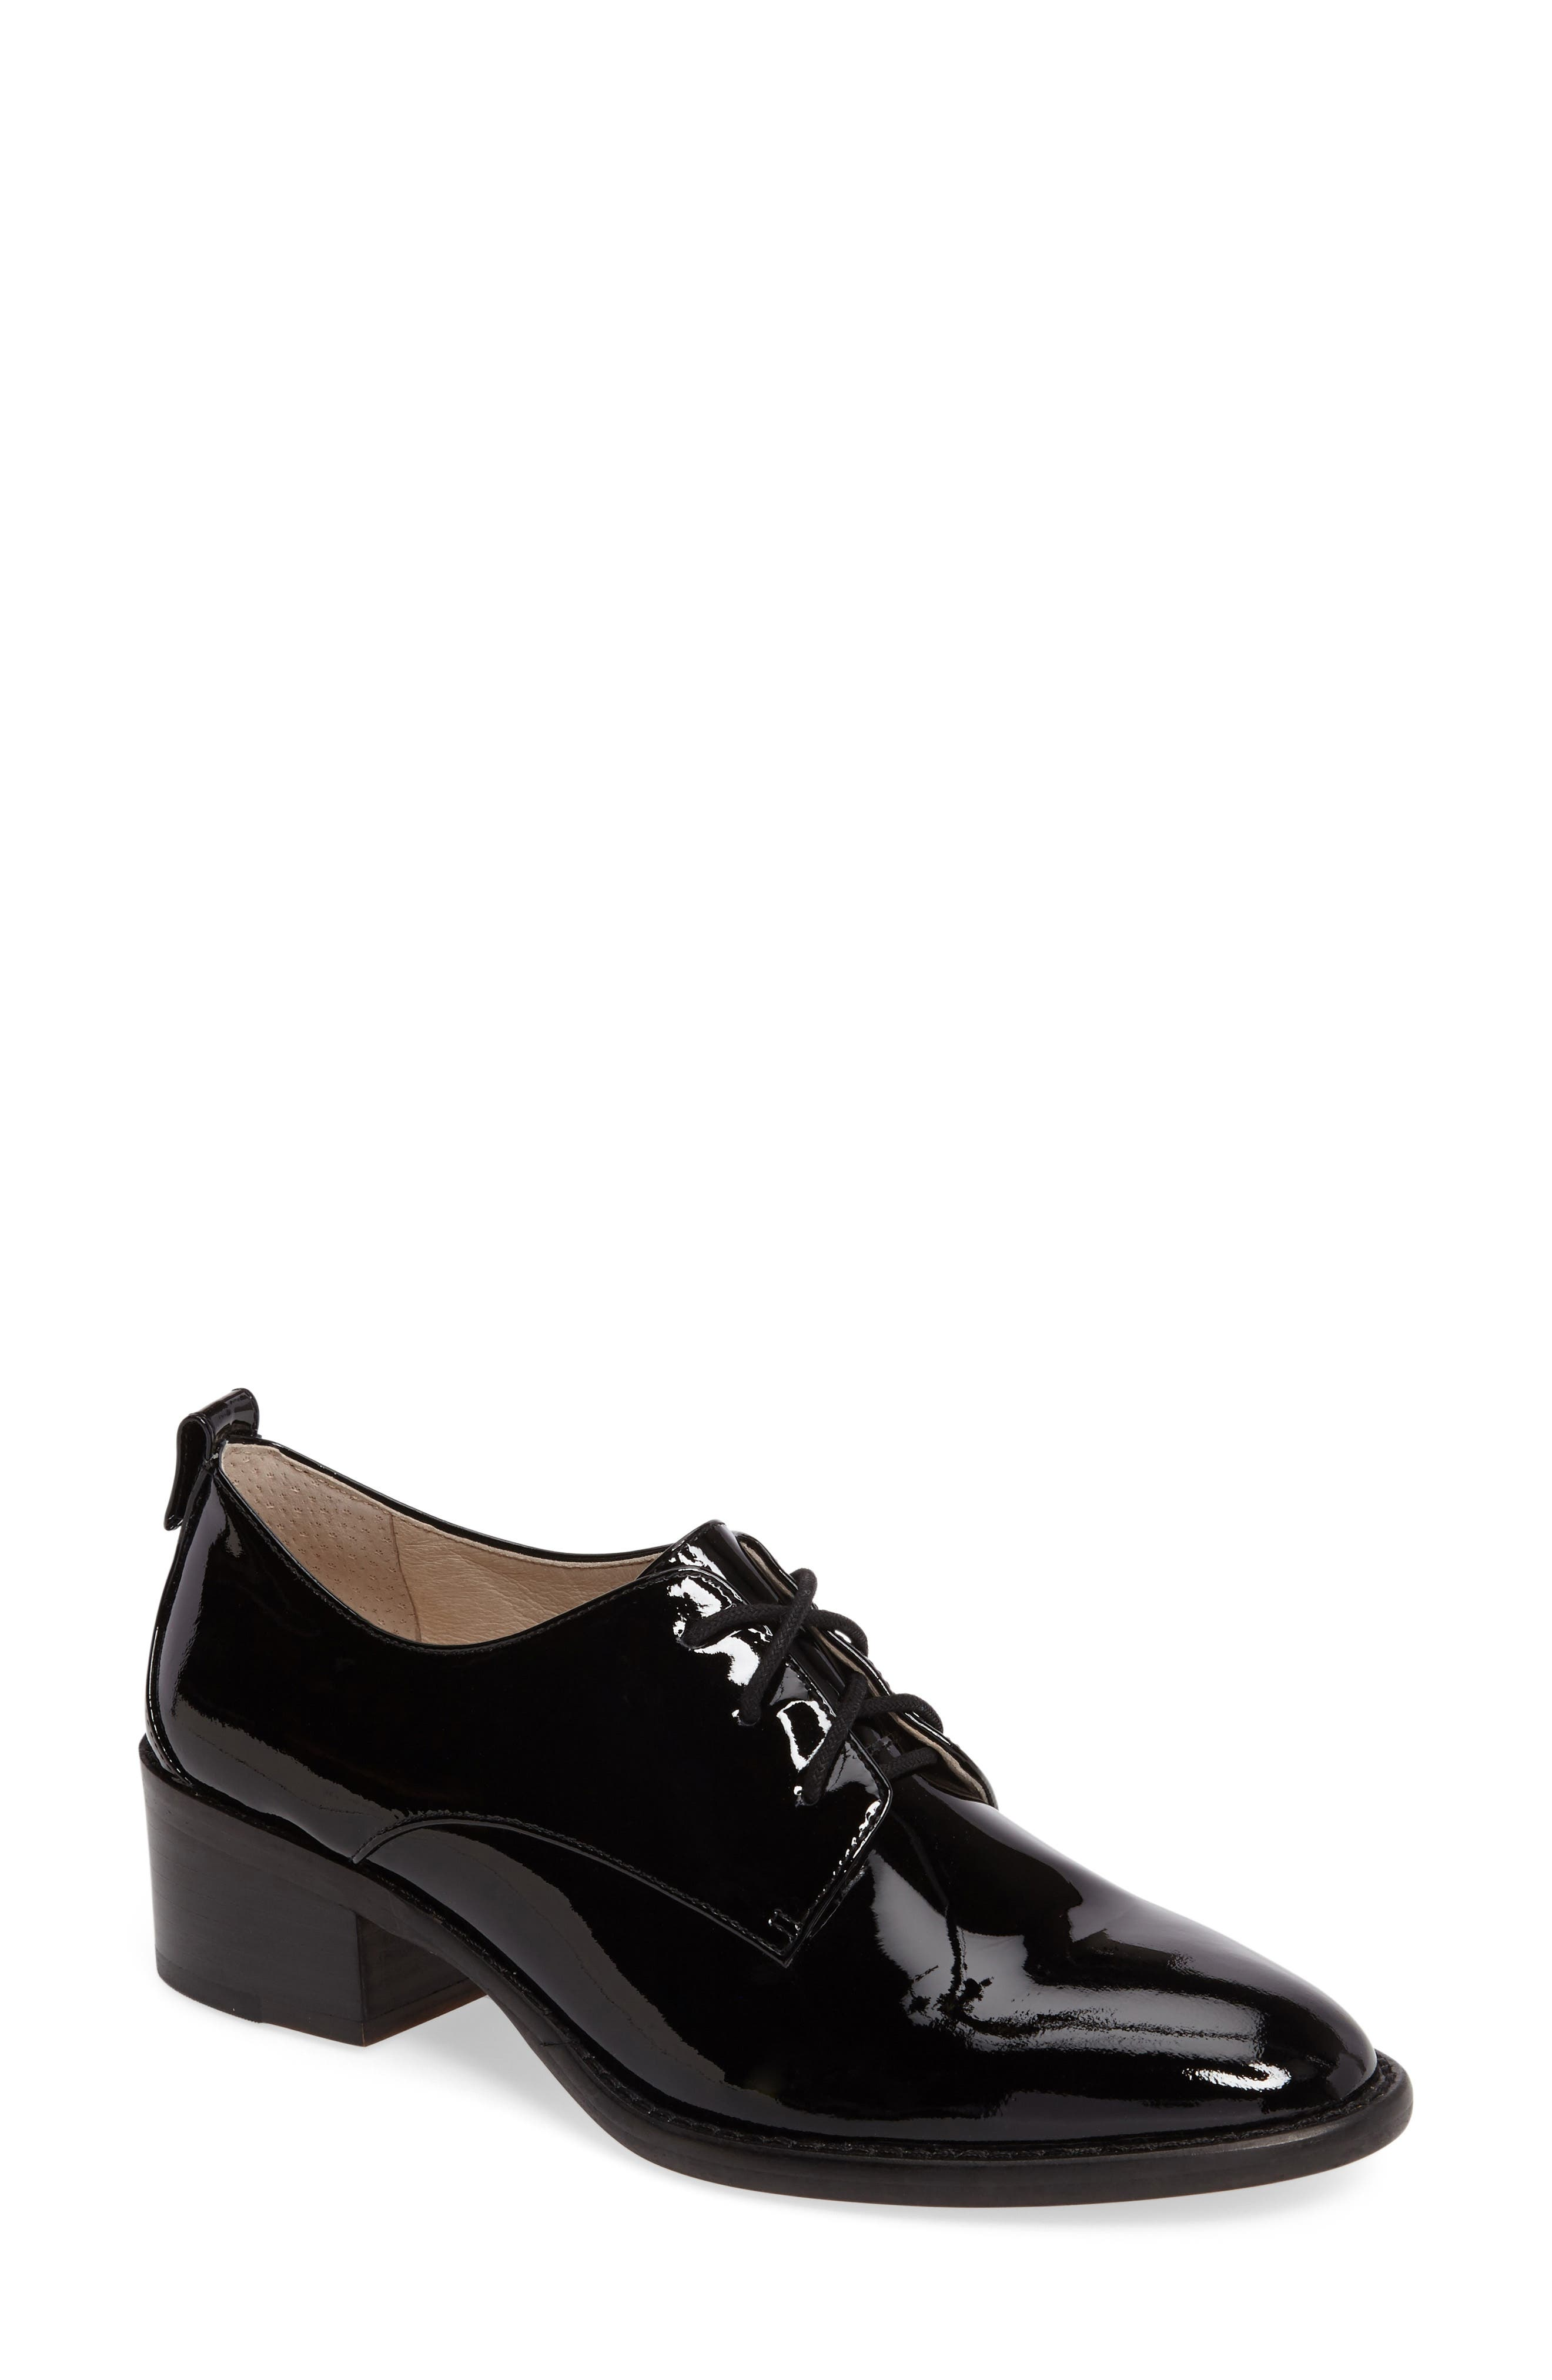 Louise et Cie Fenn Lace-Up Oxford (Women)